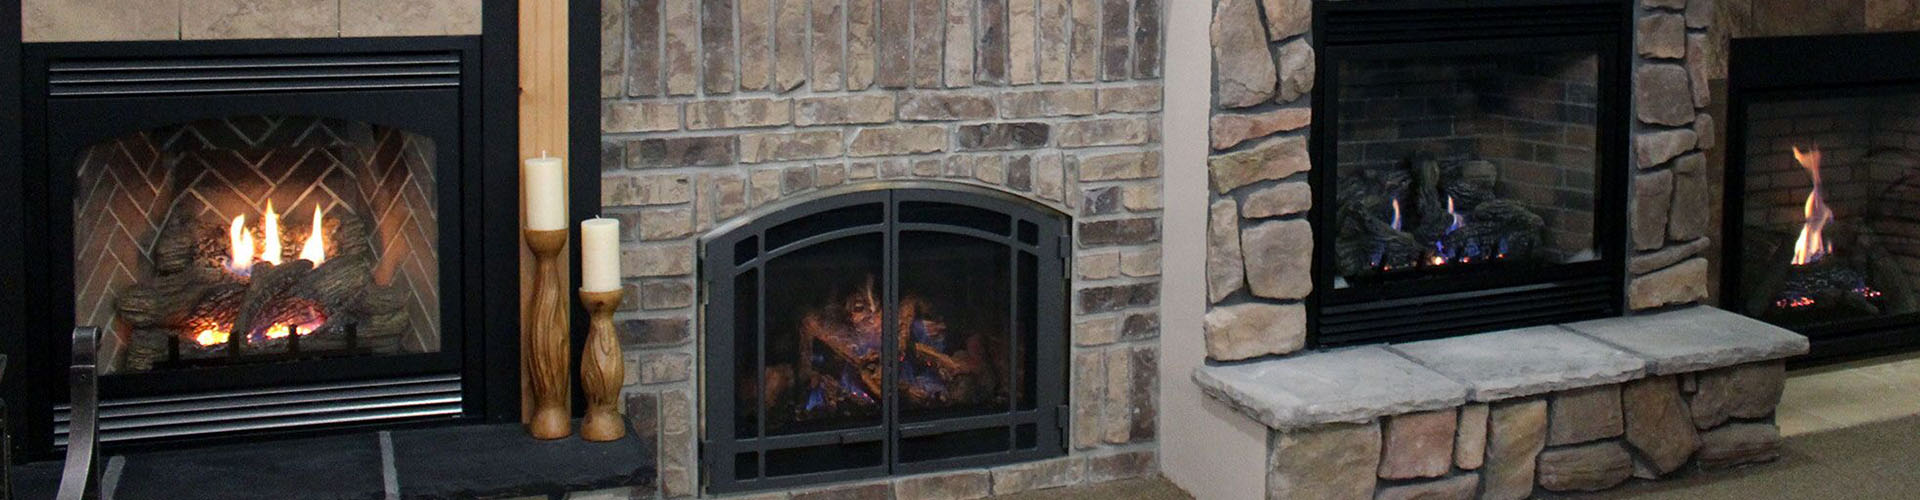 Chimneys - Nick's Fireplace Outfitters